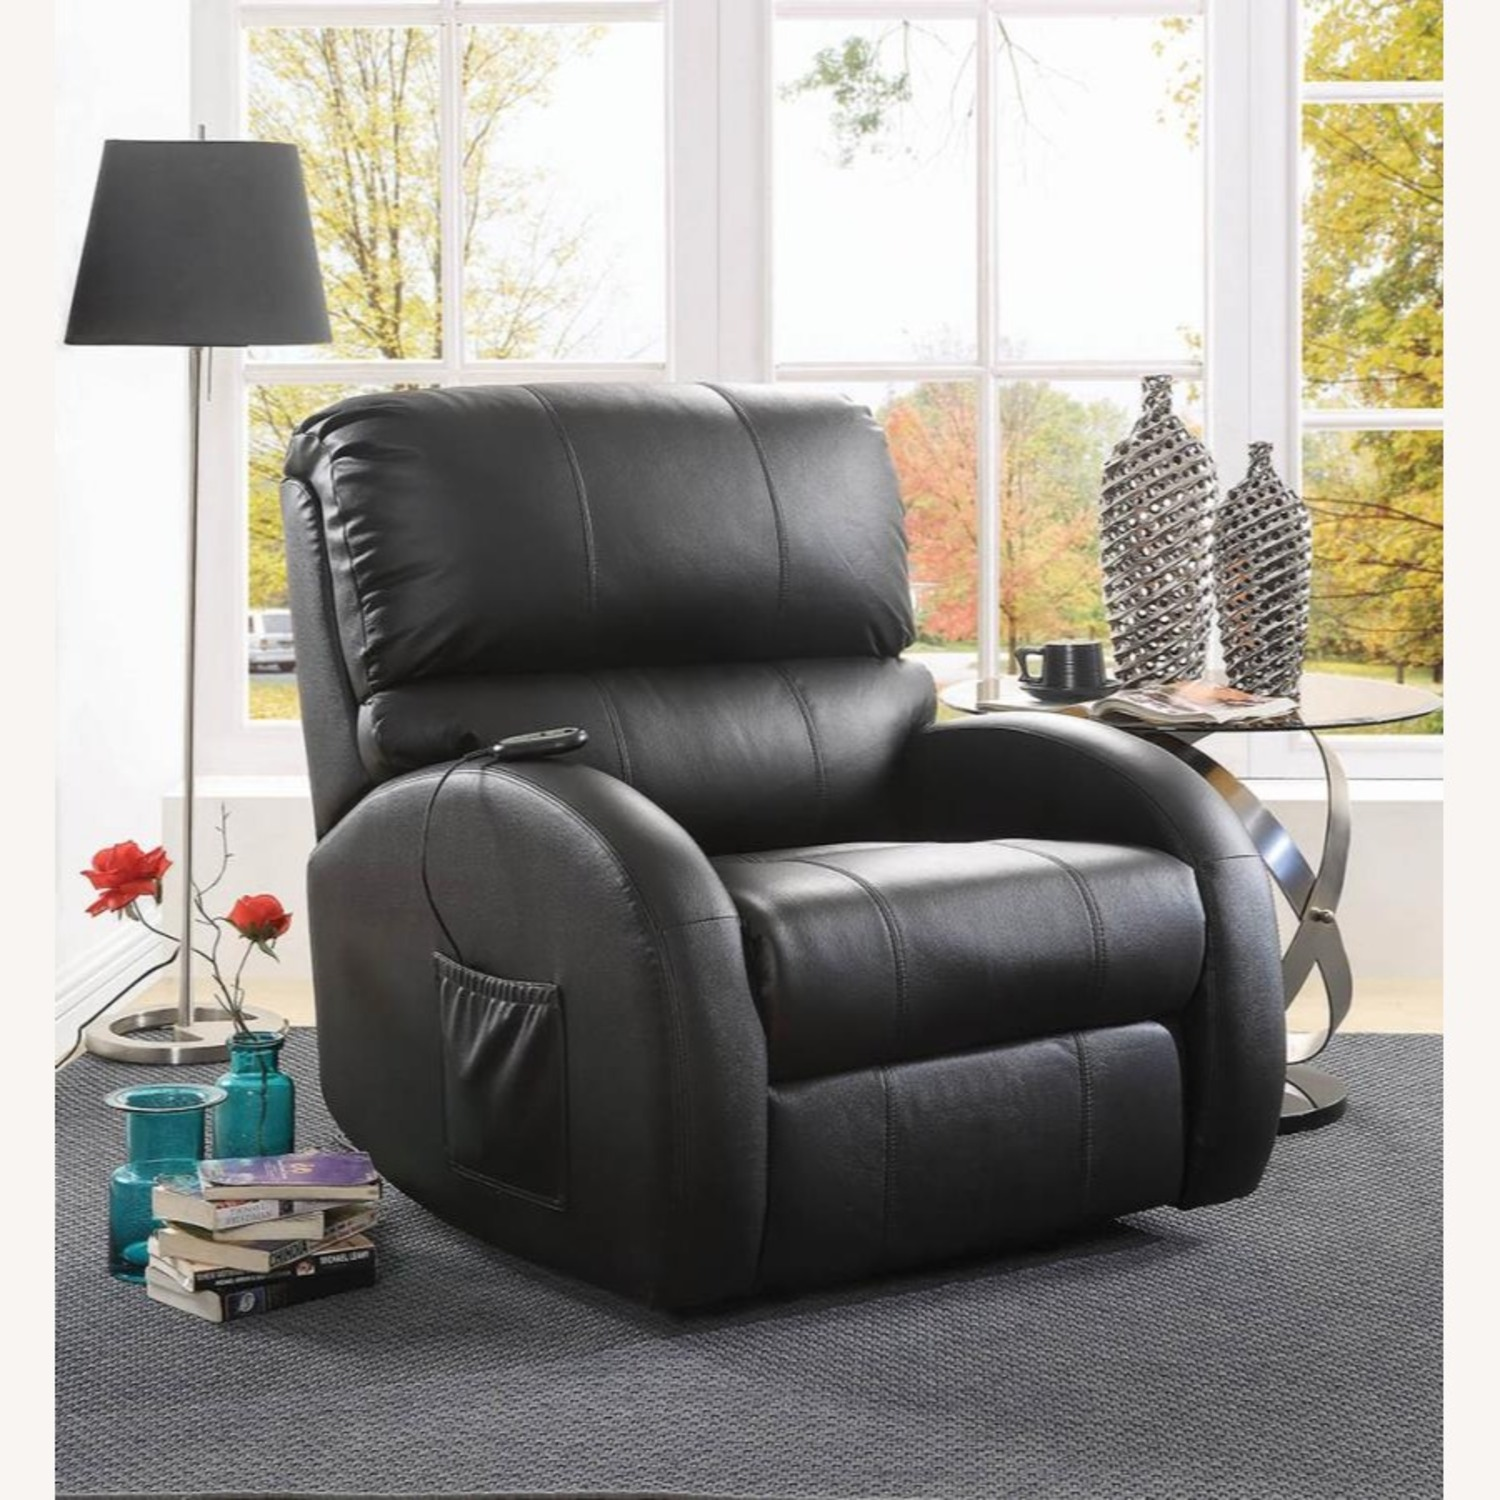 Power Lift Recliner In Black Top Grain Leather - image-9